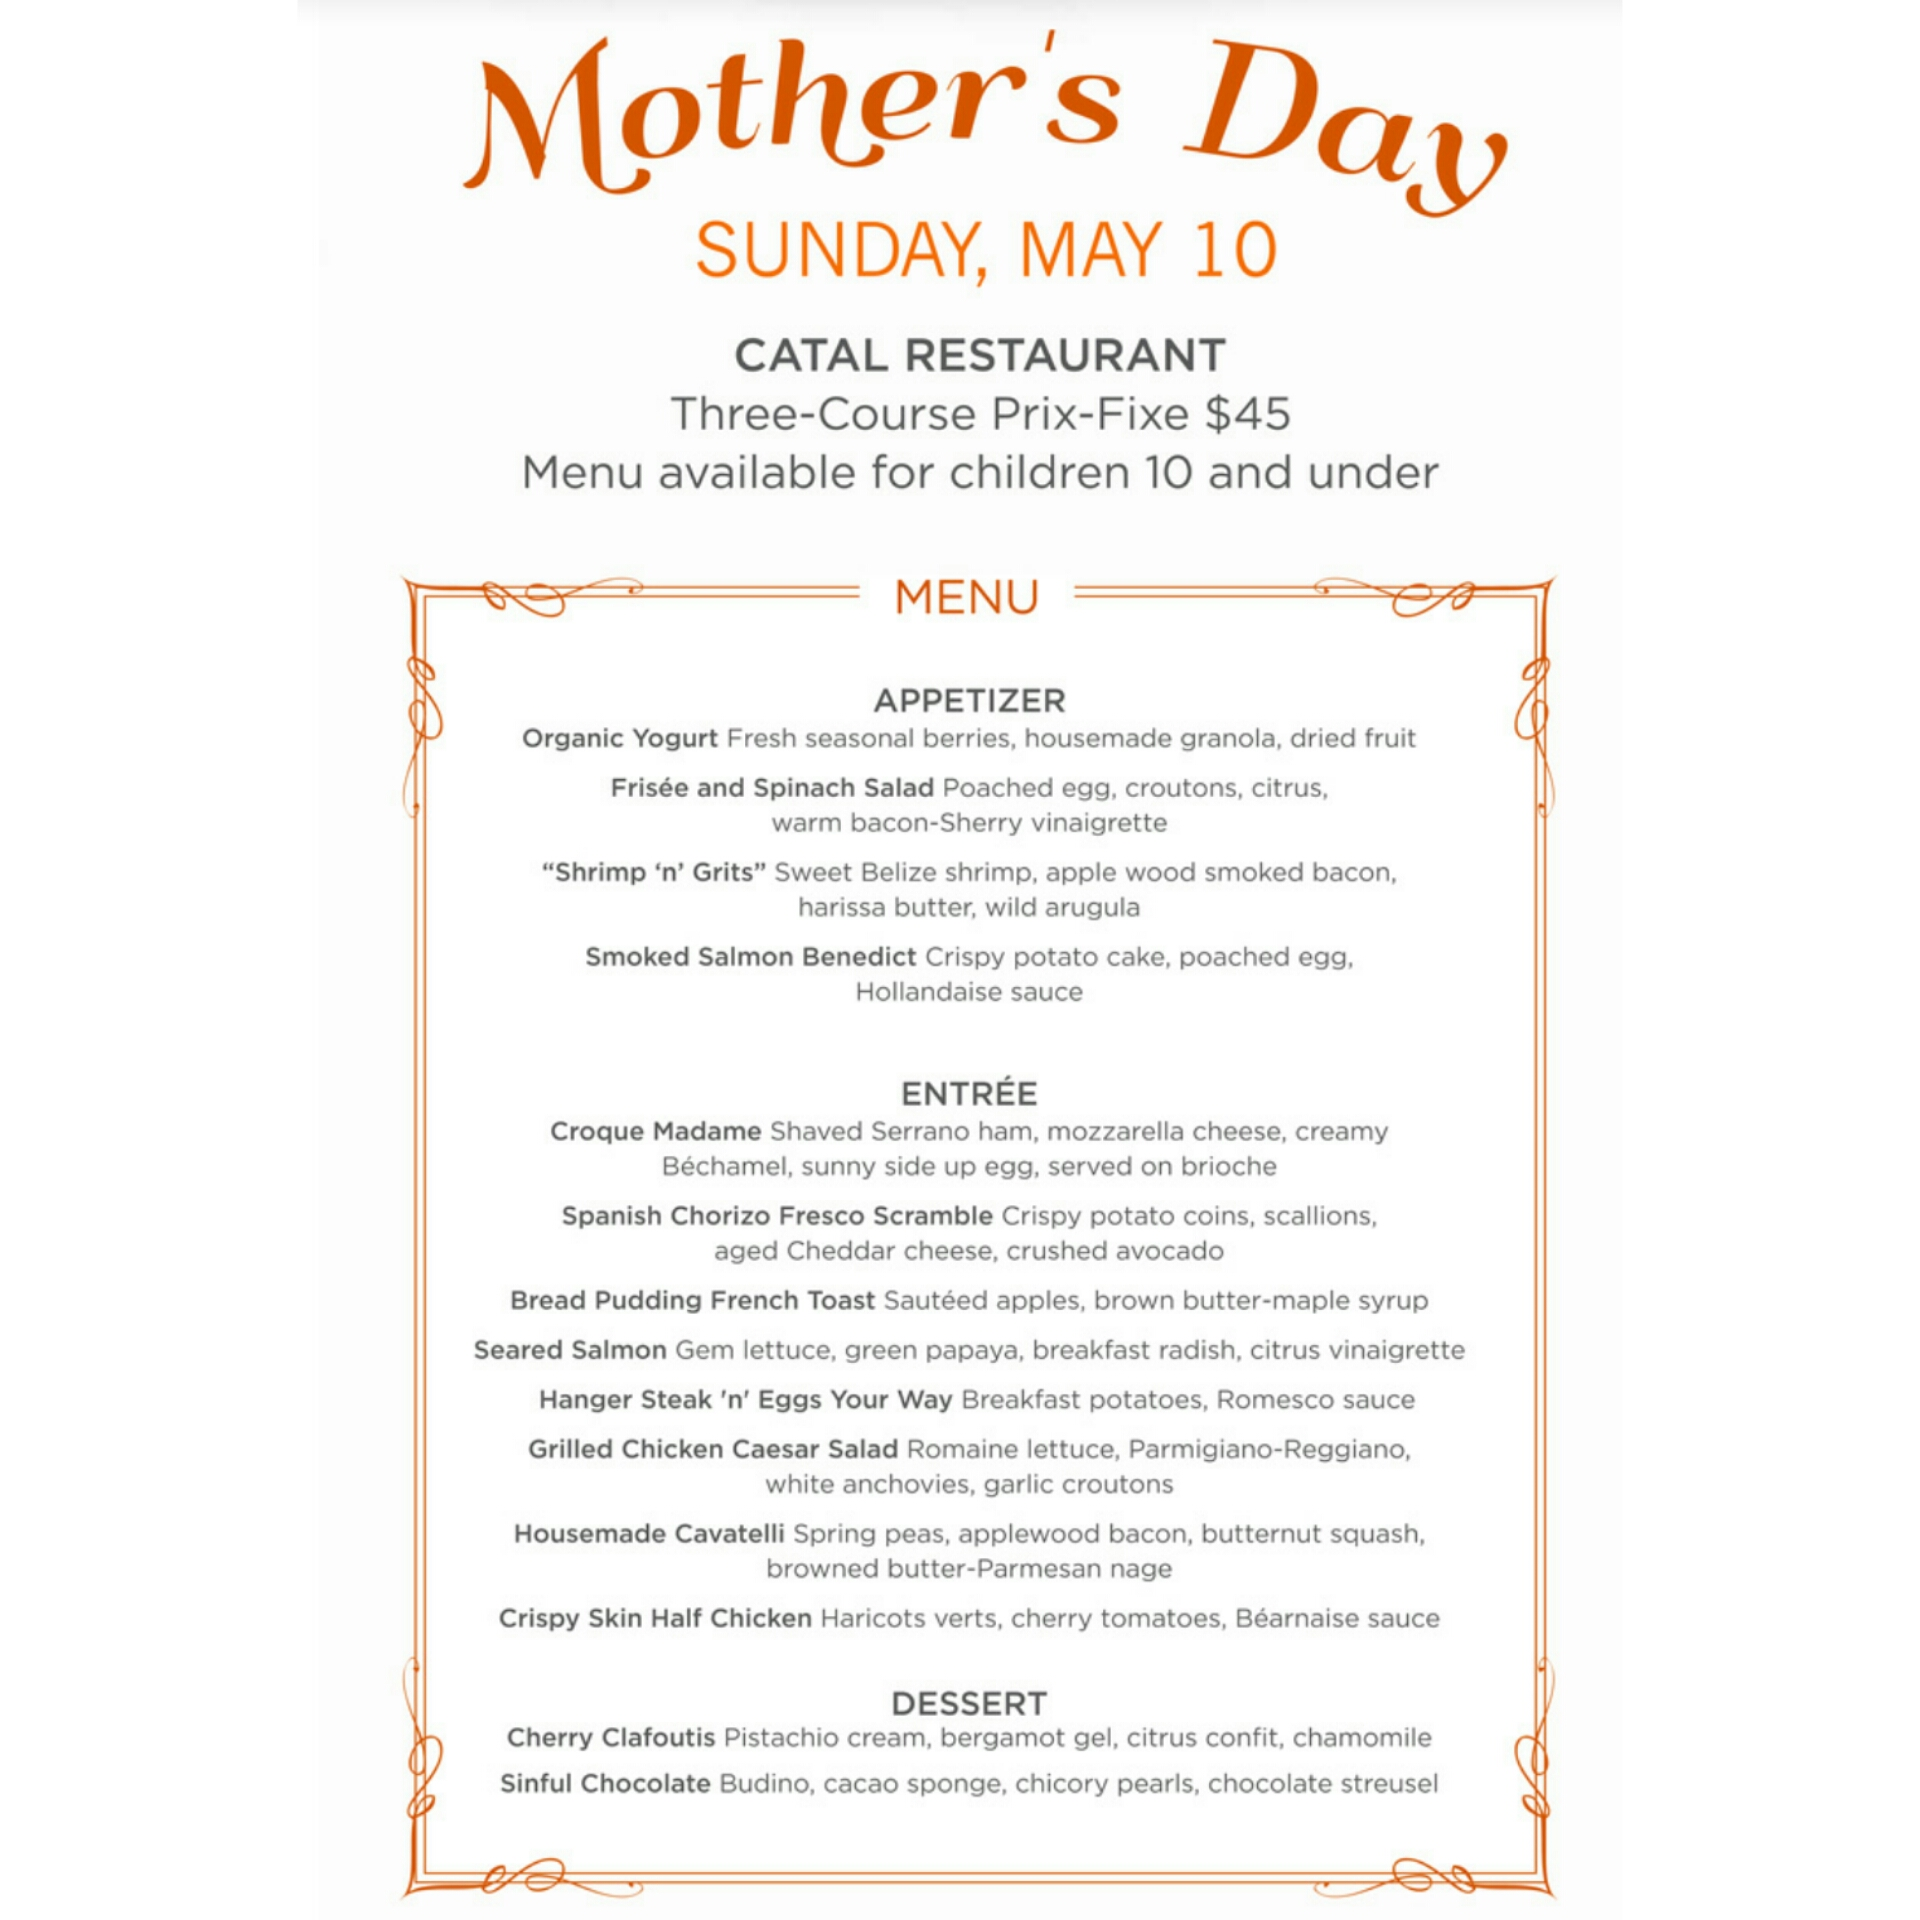 Mothers Day Dining Deals And Gift Ideas 2015 Danis Decadent Deals